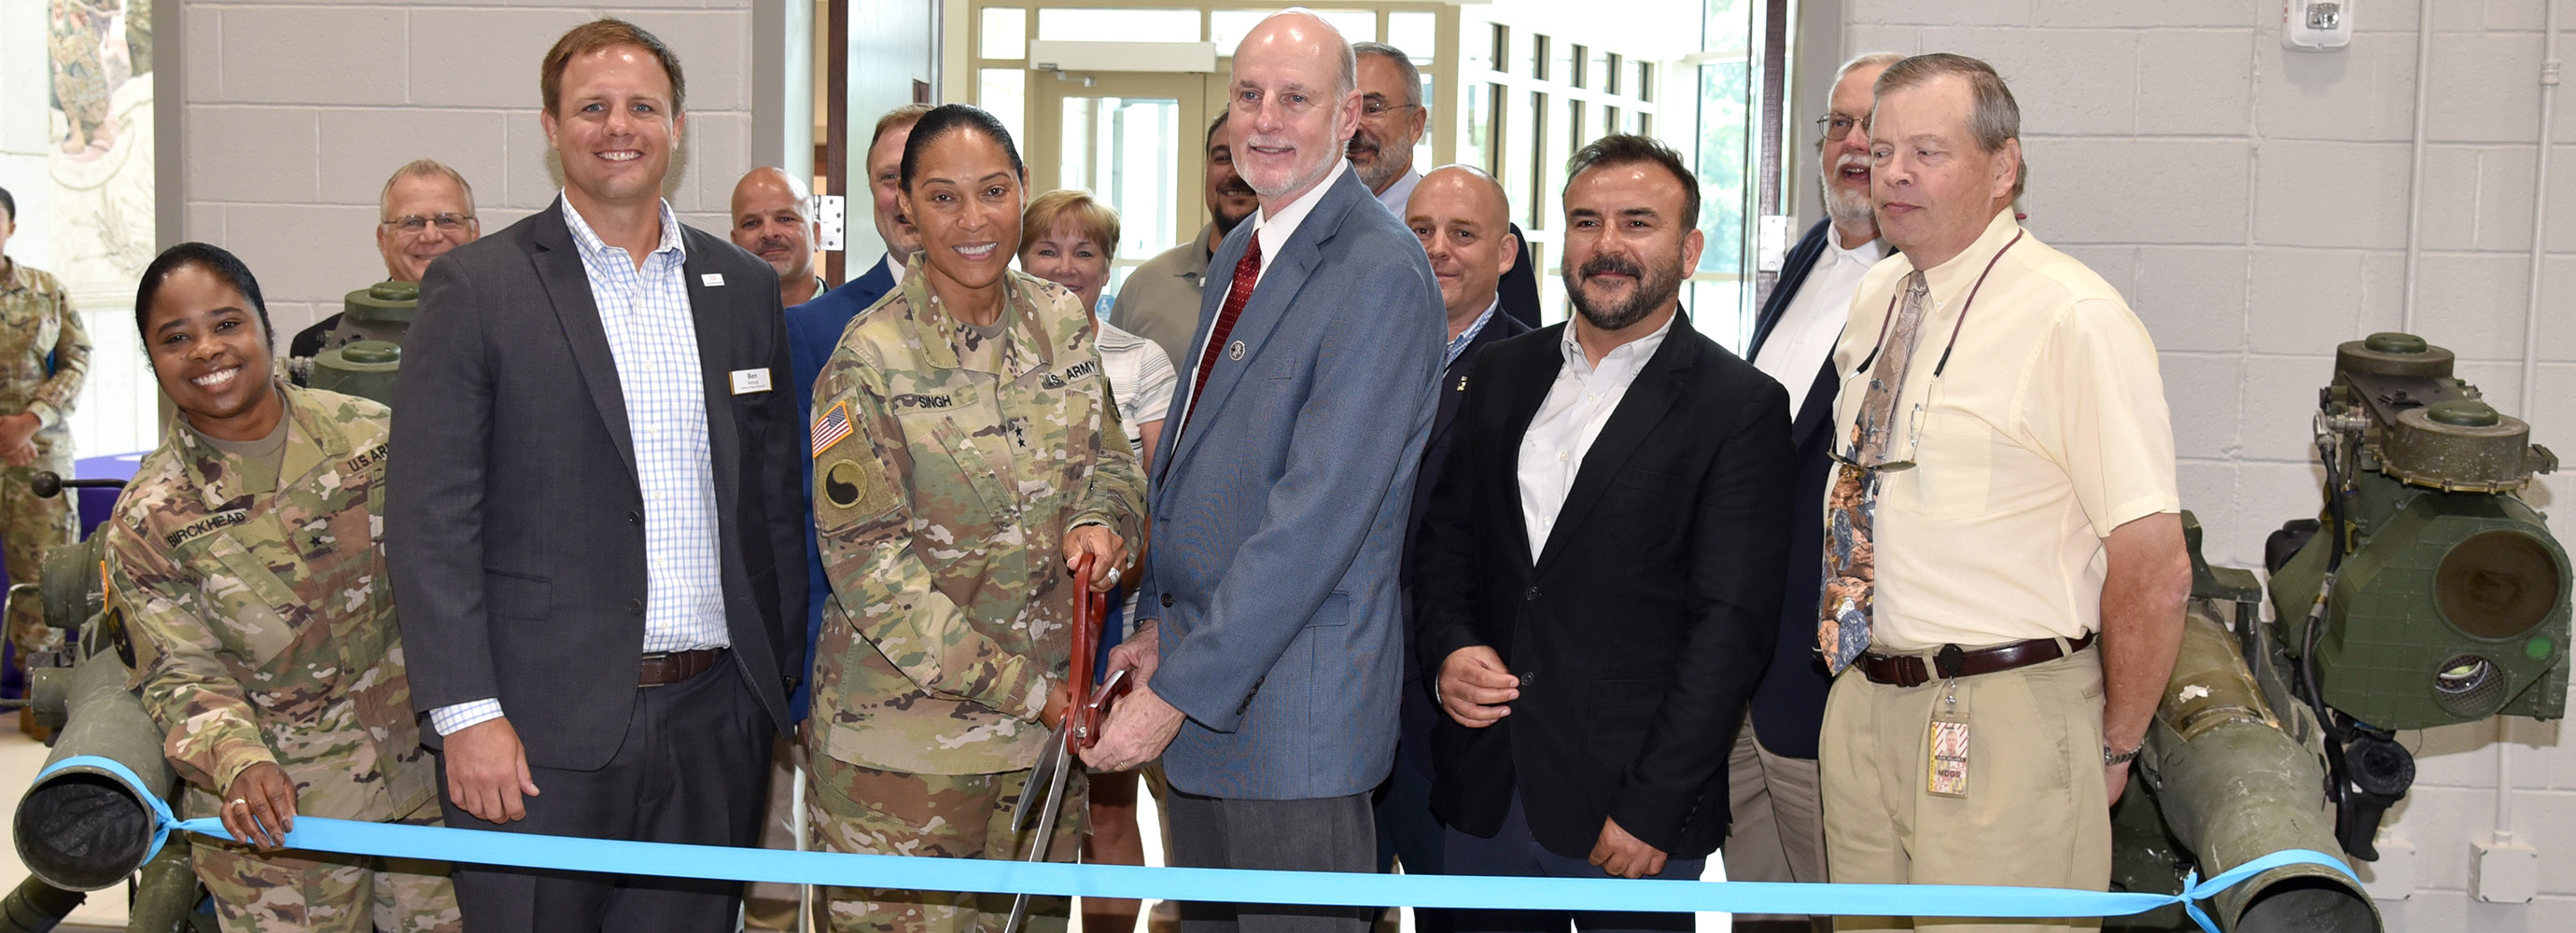 Government Construction Readiness Center Ribbon Cutting